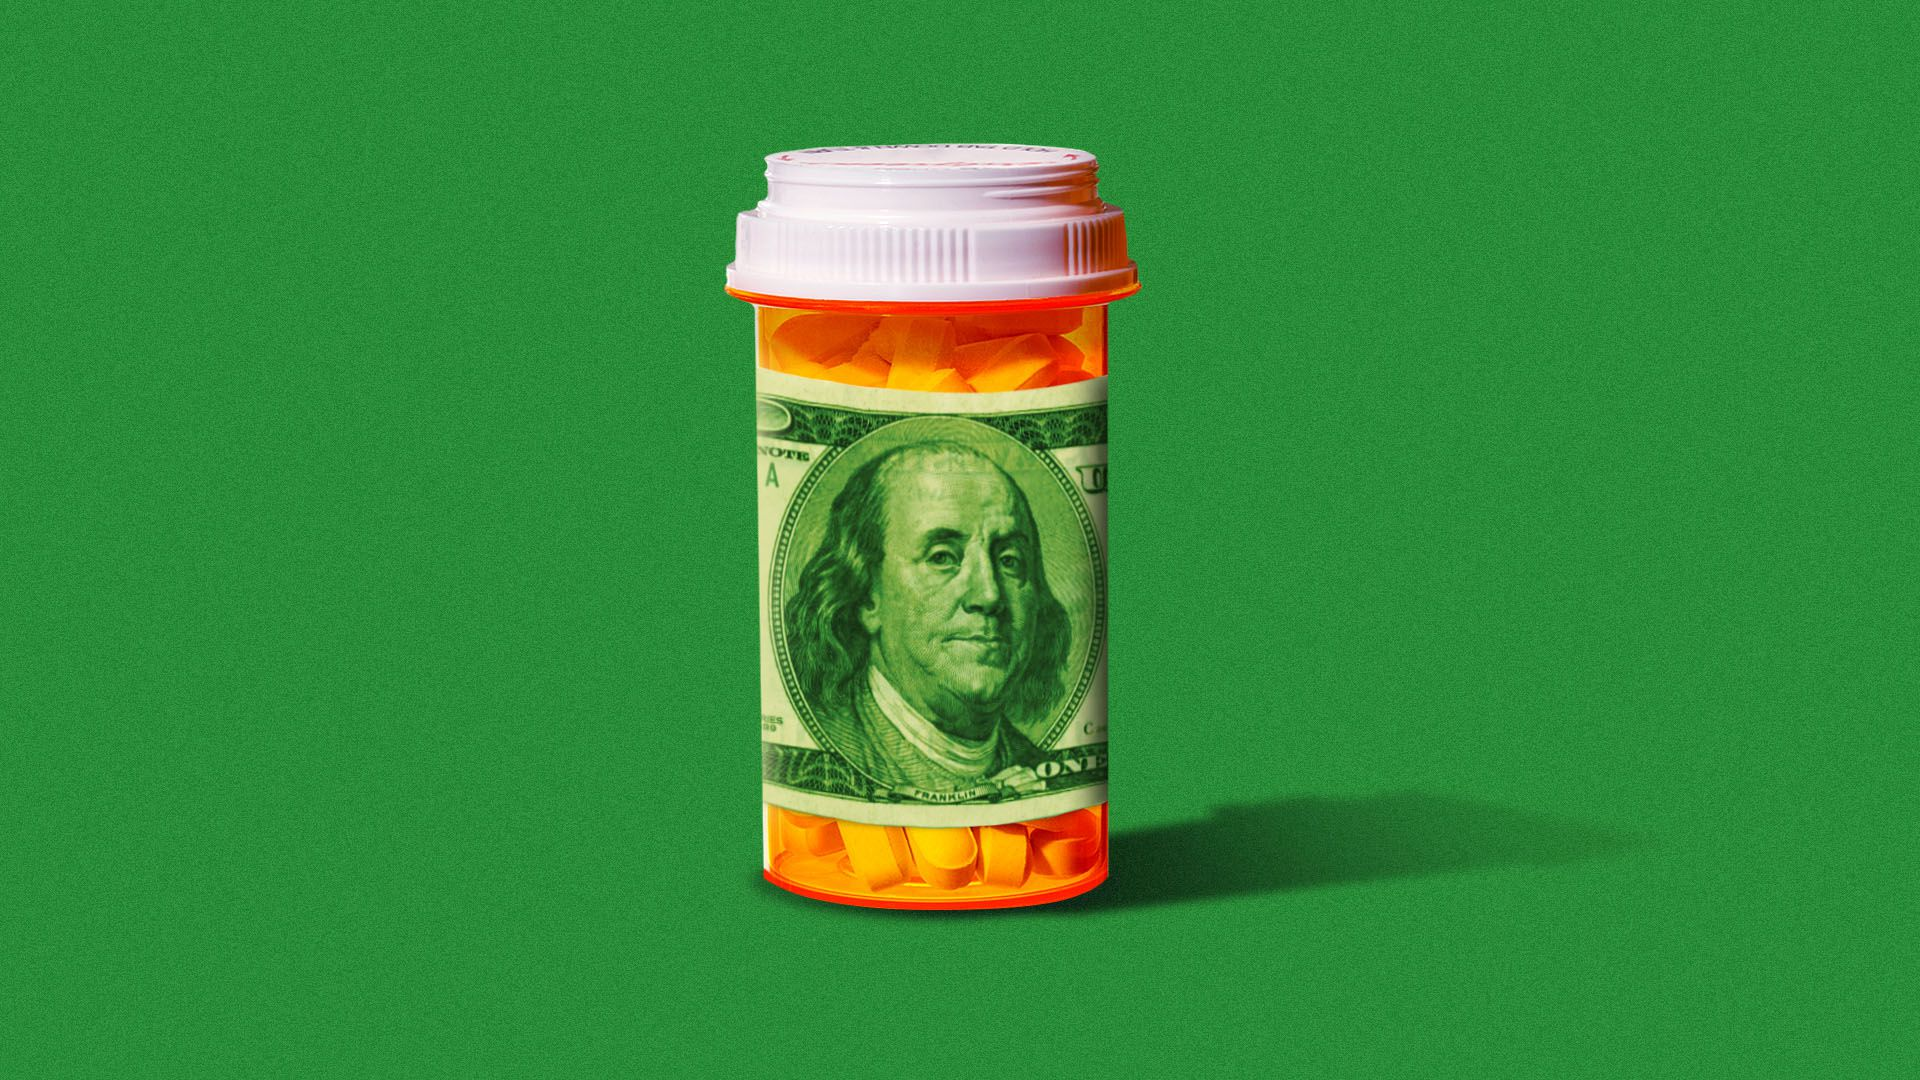 Illustration of a pill bottle with a hundred dollar bill for a label